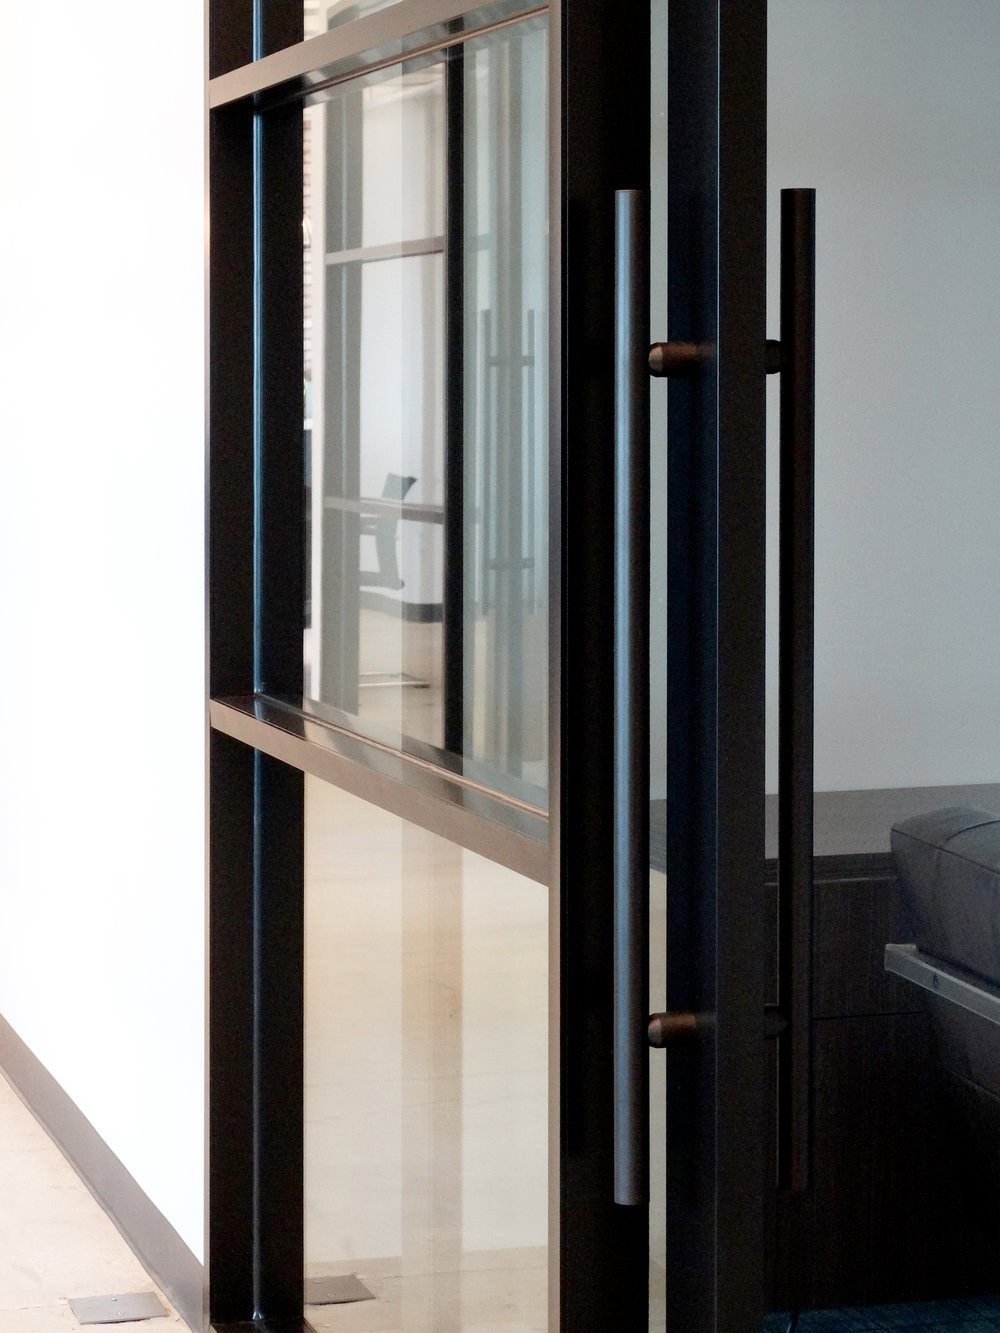 Encase Black Powder Coat Aluminum Framed Sliding Door - Spaceworks AI.JPG